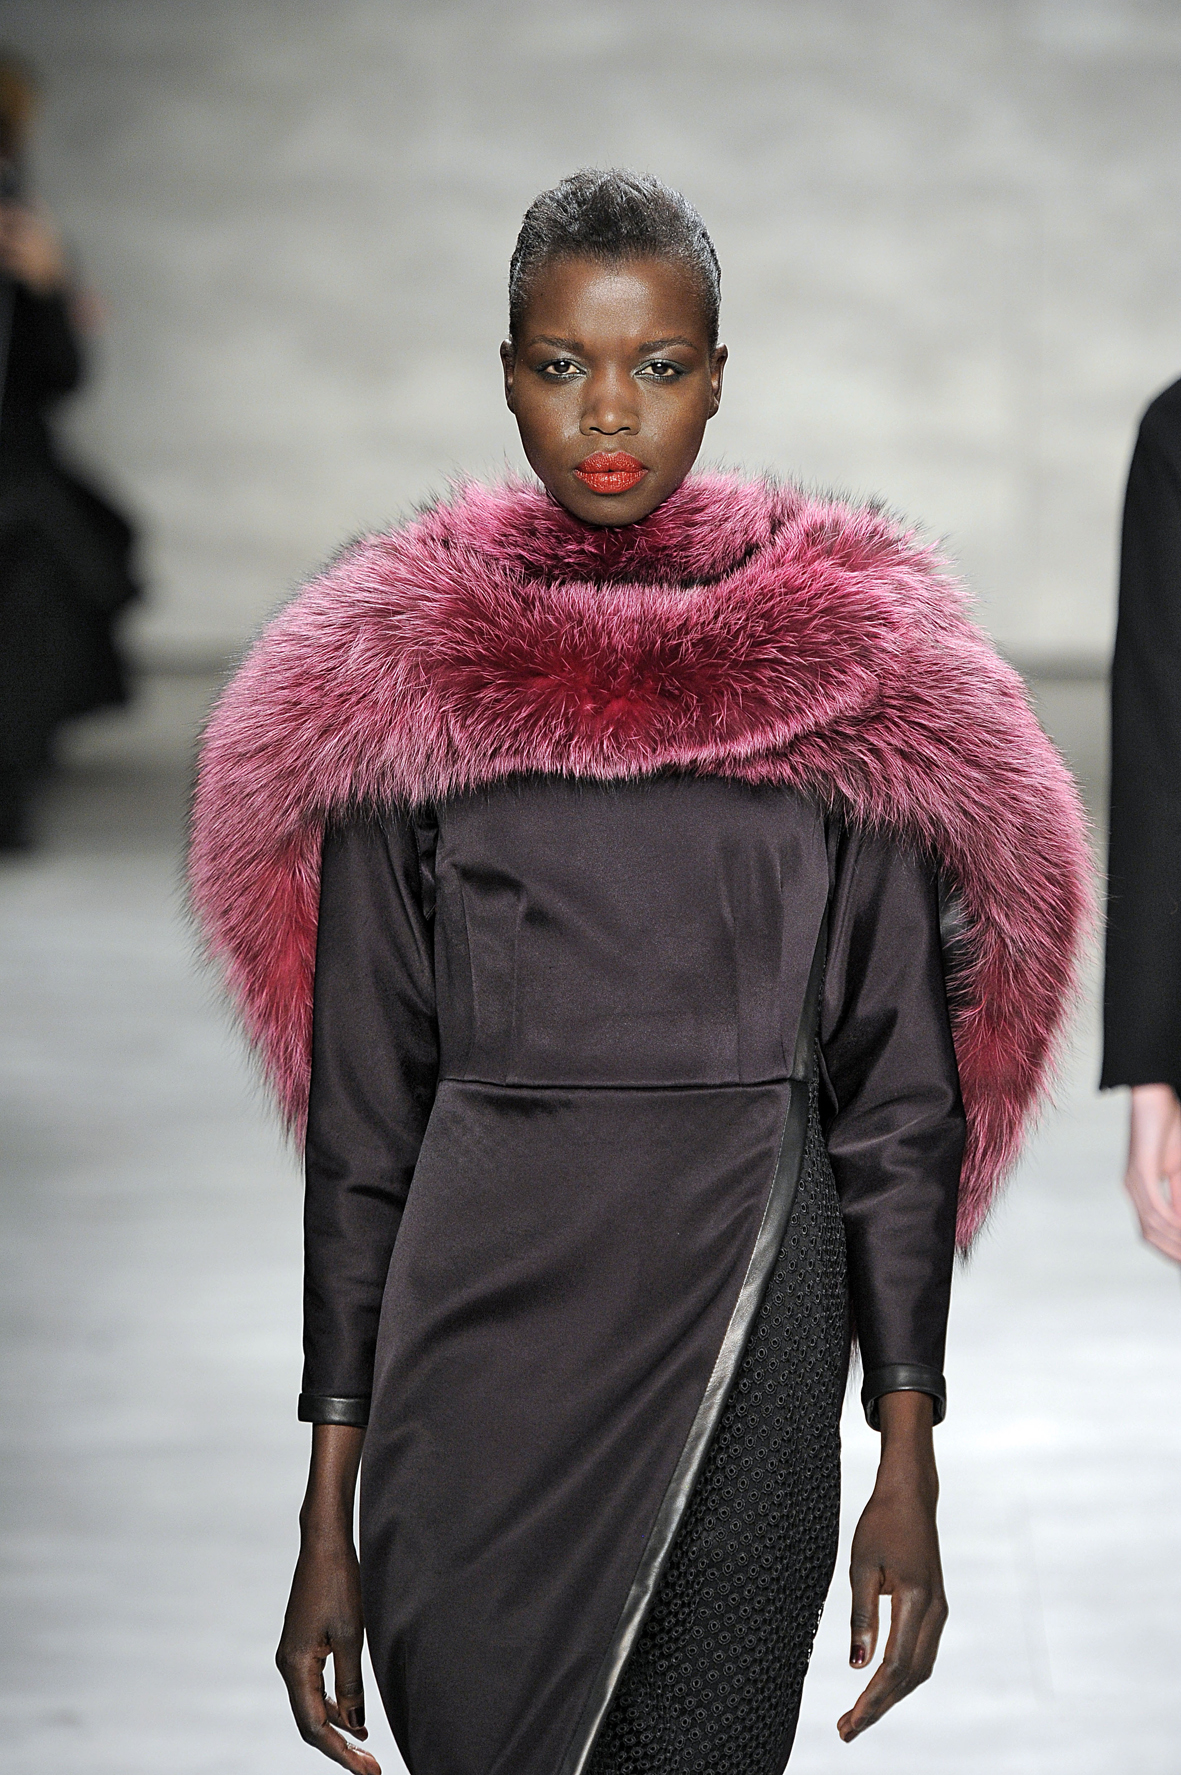 A full-bodied bordeaux color fox scarf from designer Georgine's Fall 2014 - Winter 2015 collection